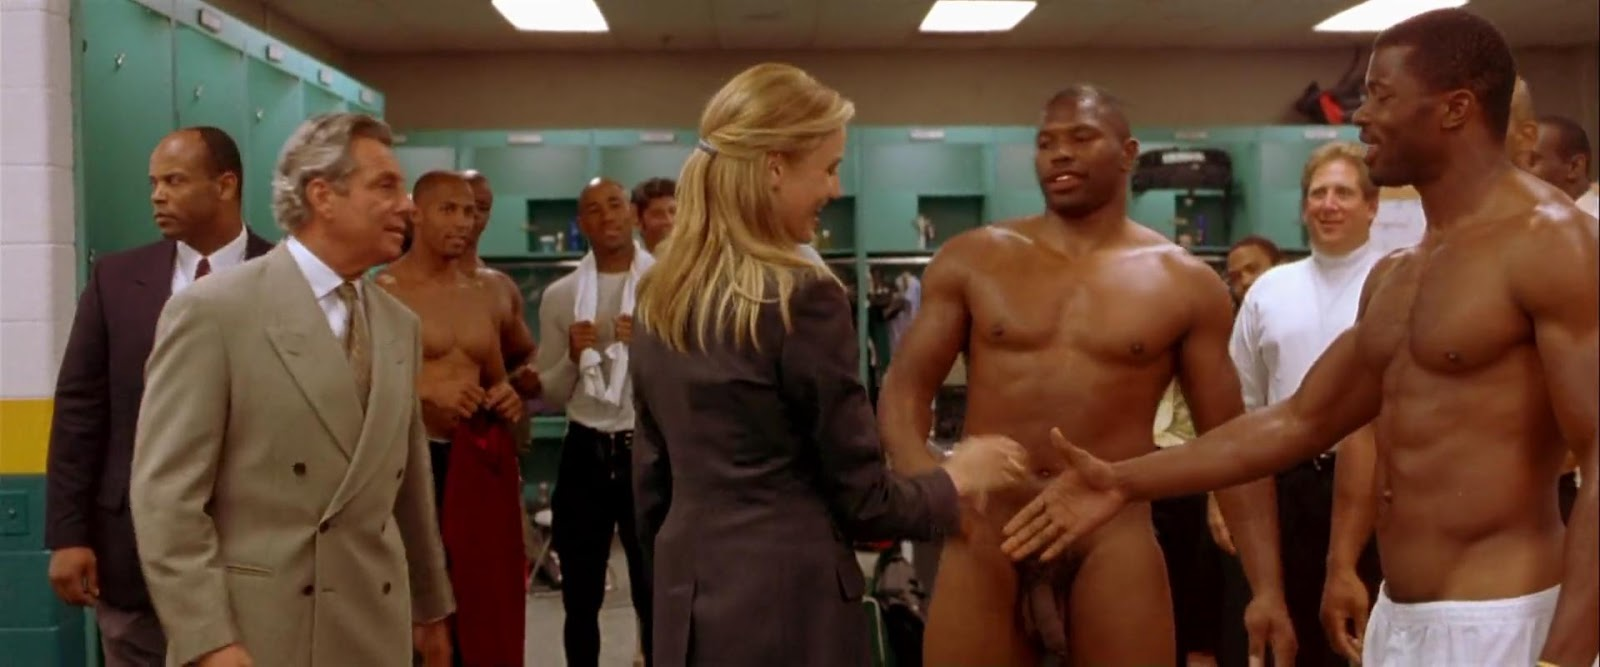 Any given sunday nude scene